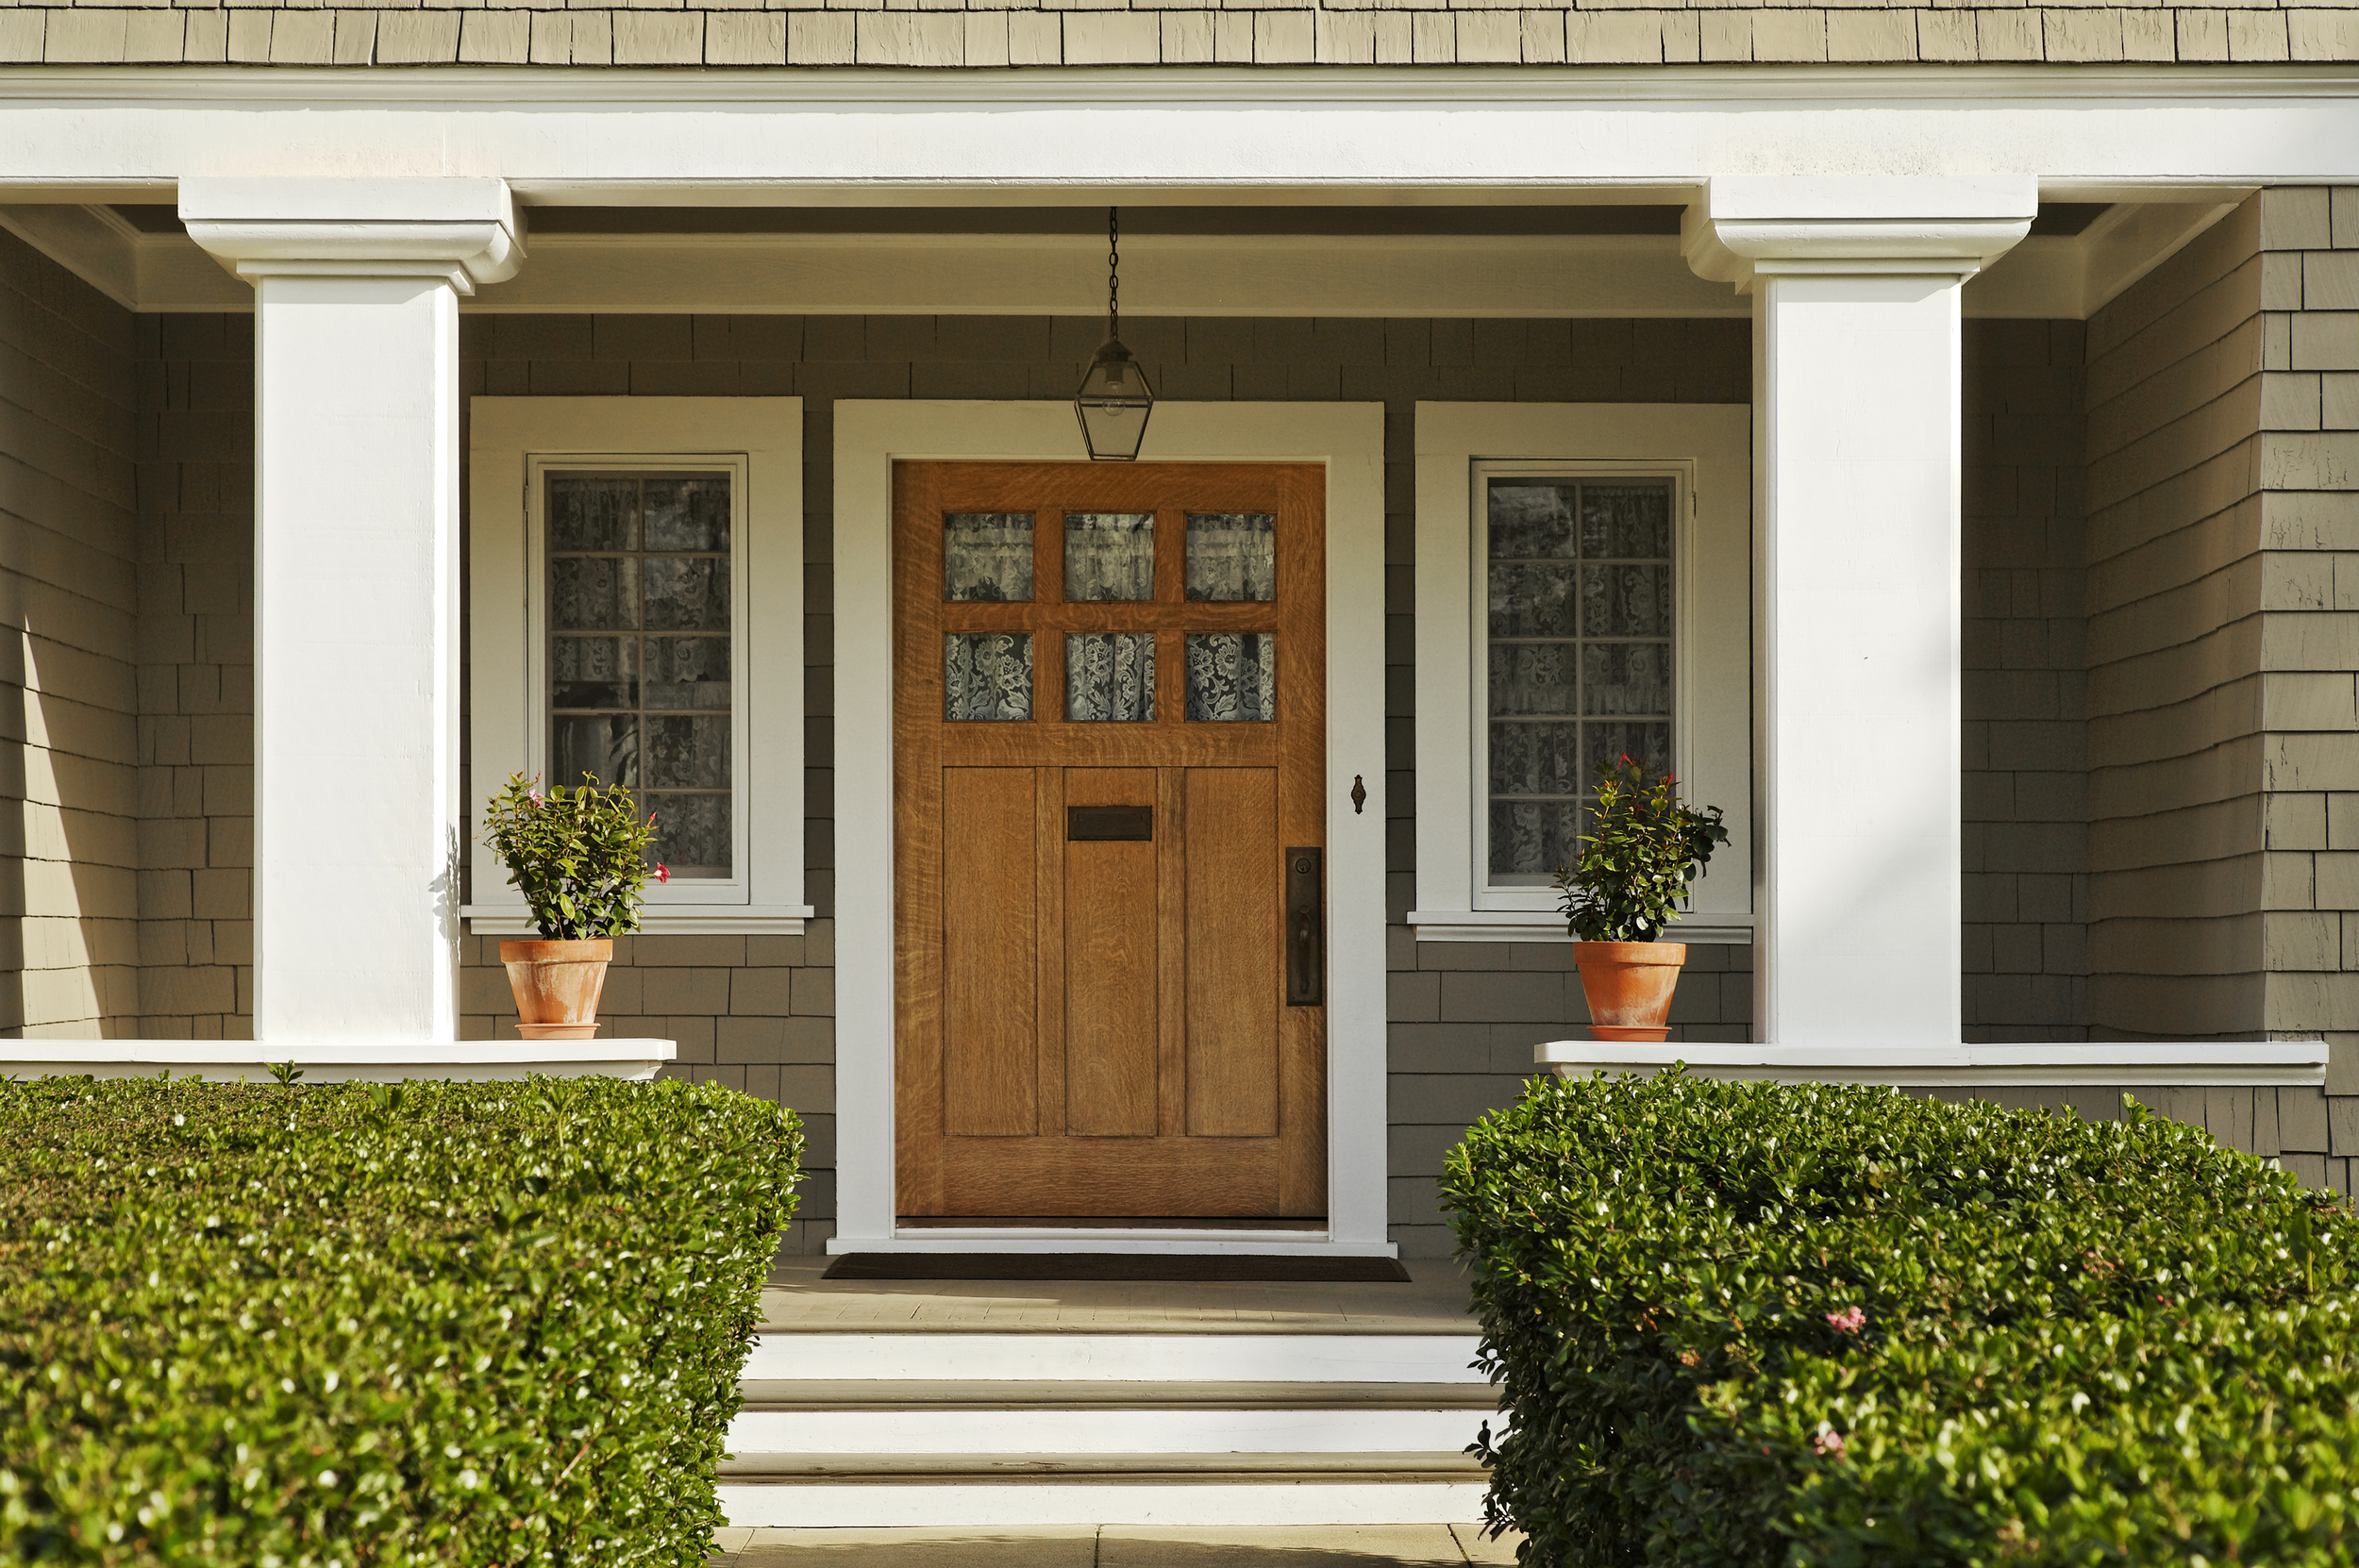 Porch-Front-SmallWelcomingCurbAppeal-shutterstock_79368820.jpg